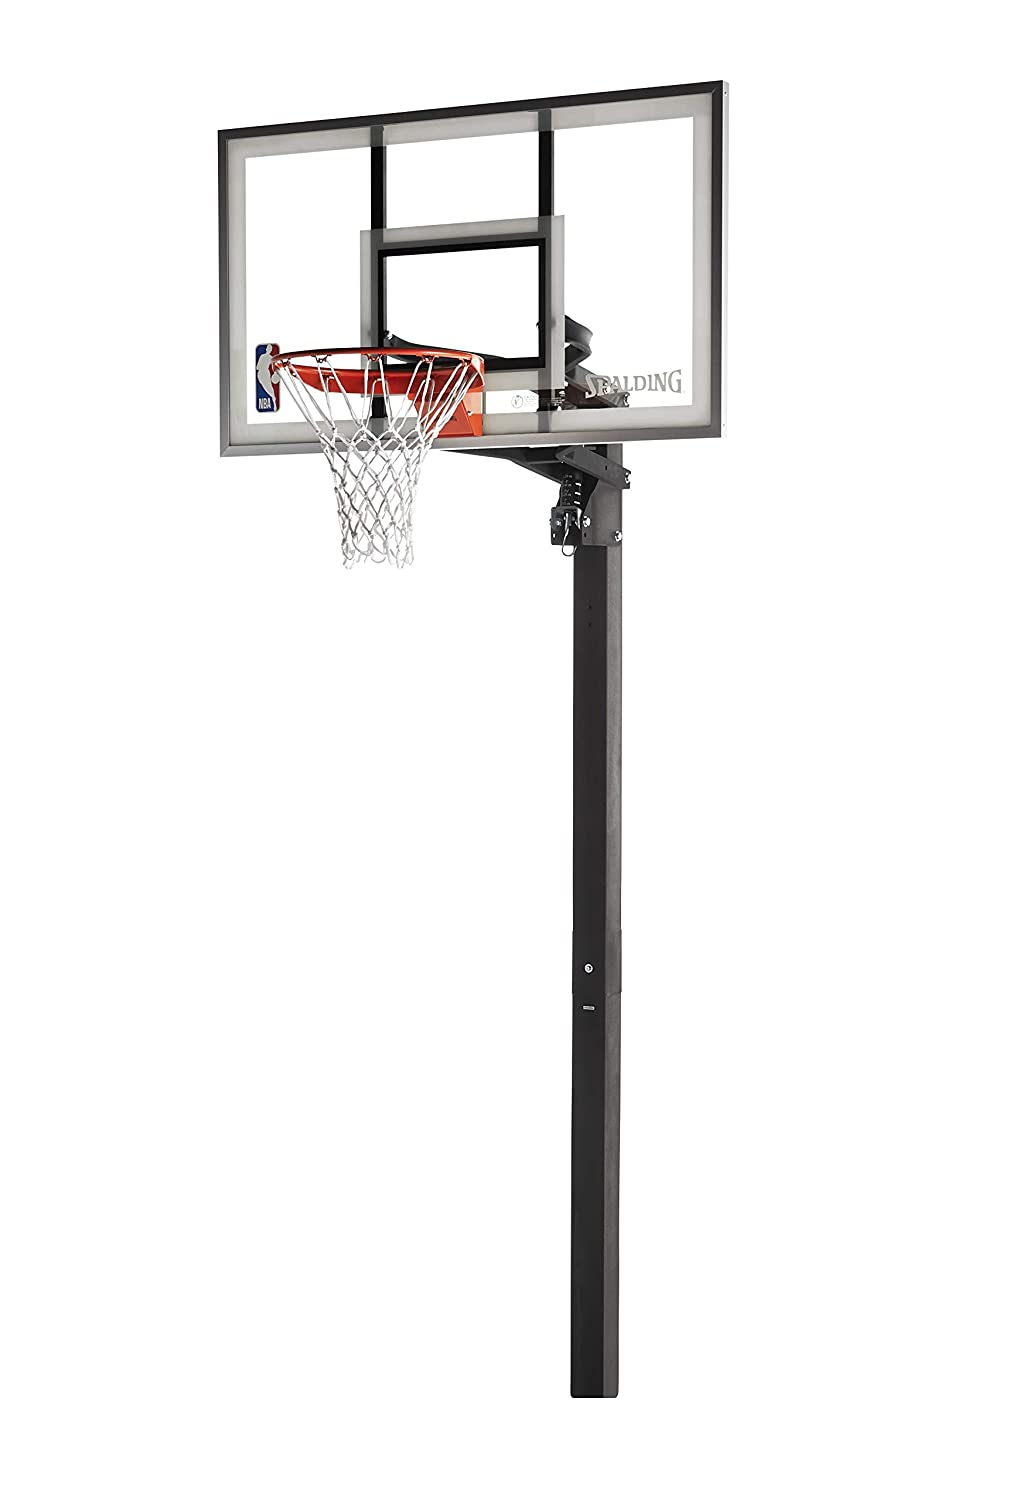 Top 8 Best Basketball Hoop for Kids Reviews in 2020 8